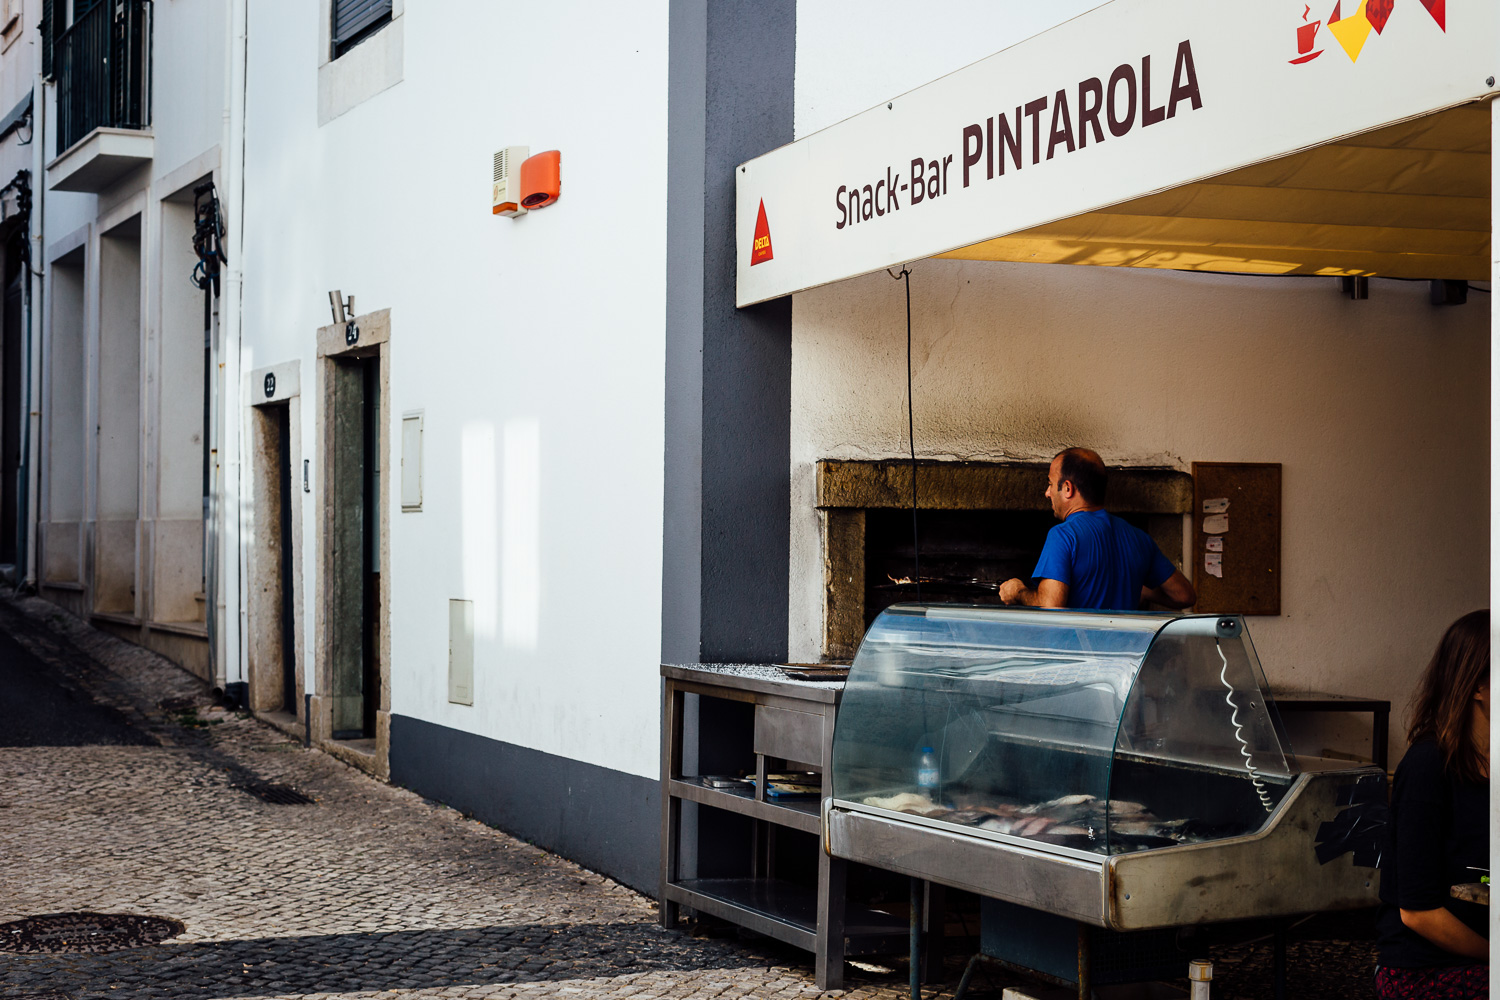 Cooking-Fish-Artesanal-Couisine-Storefront-Portugal-Travel-Photography.jpg